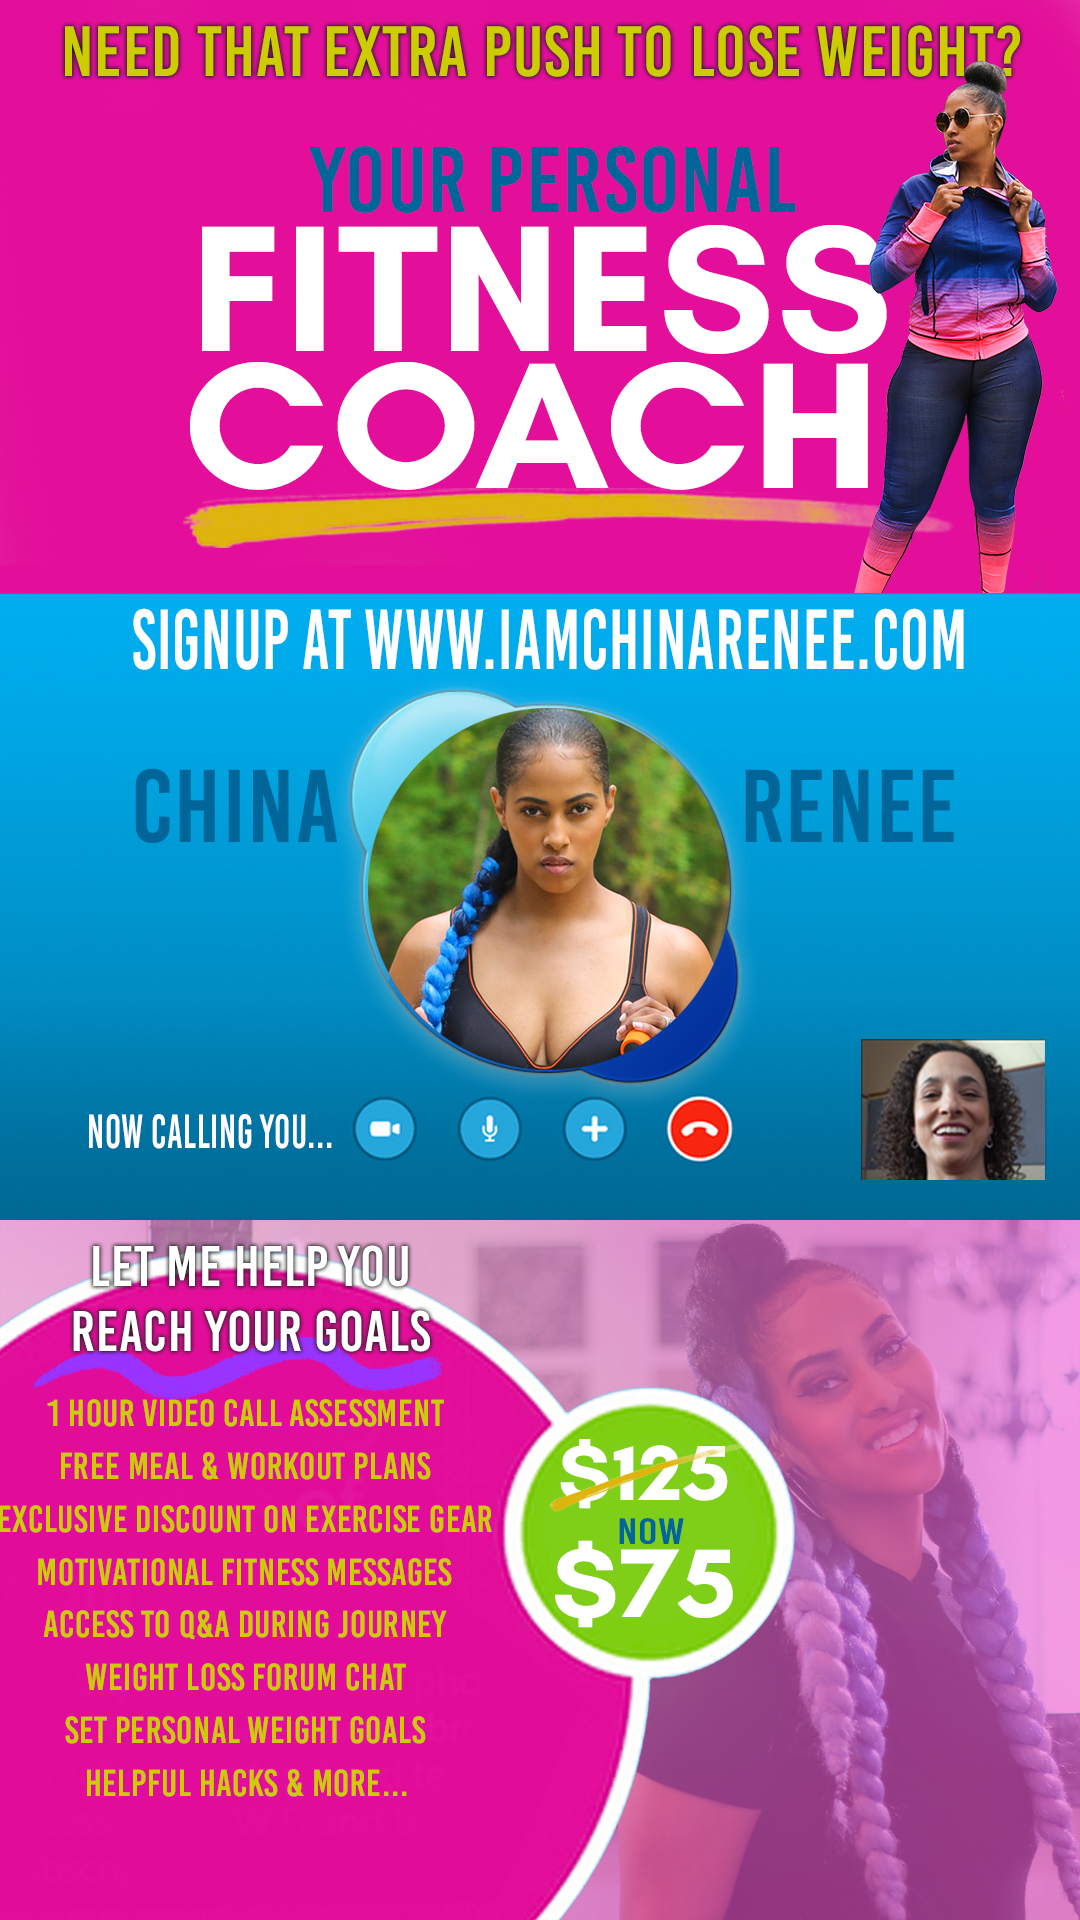 Image of Personal Online Fitness Coach